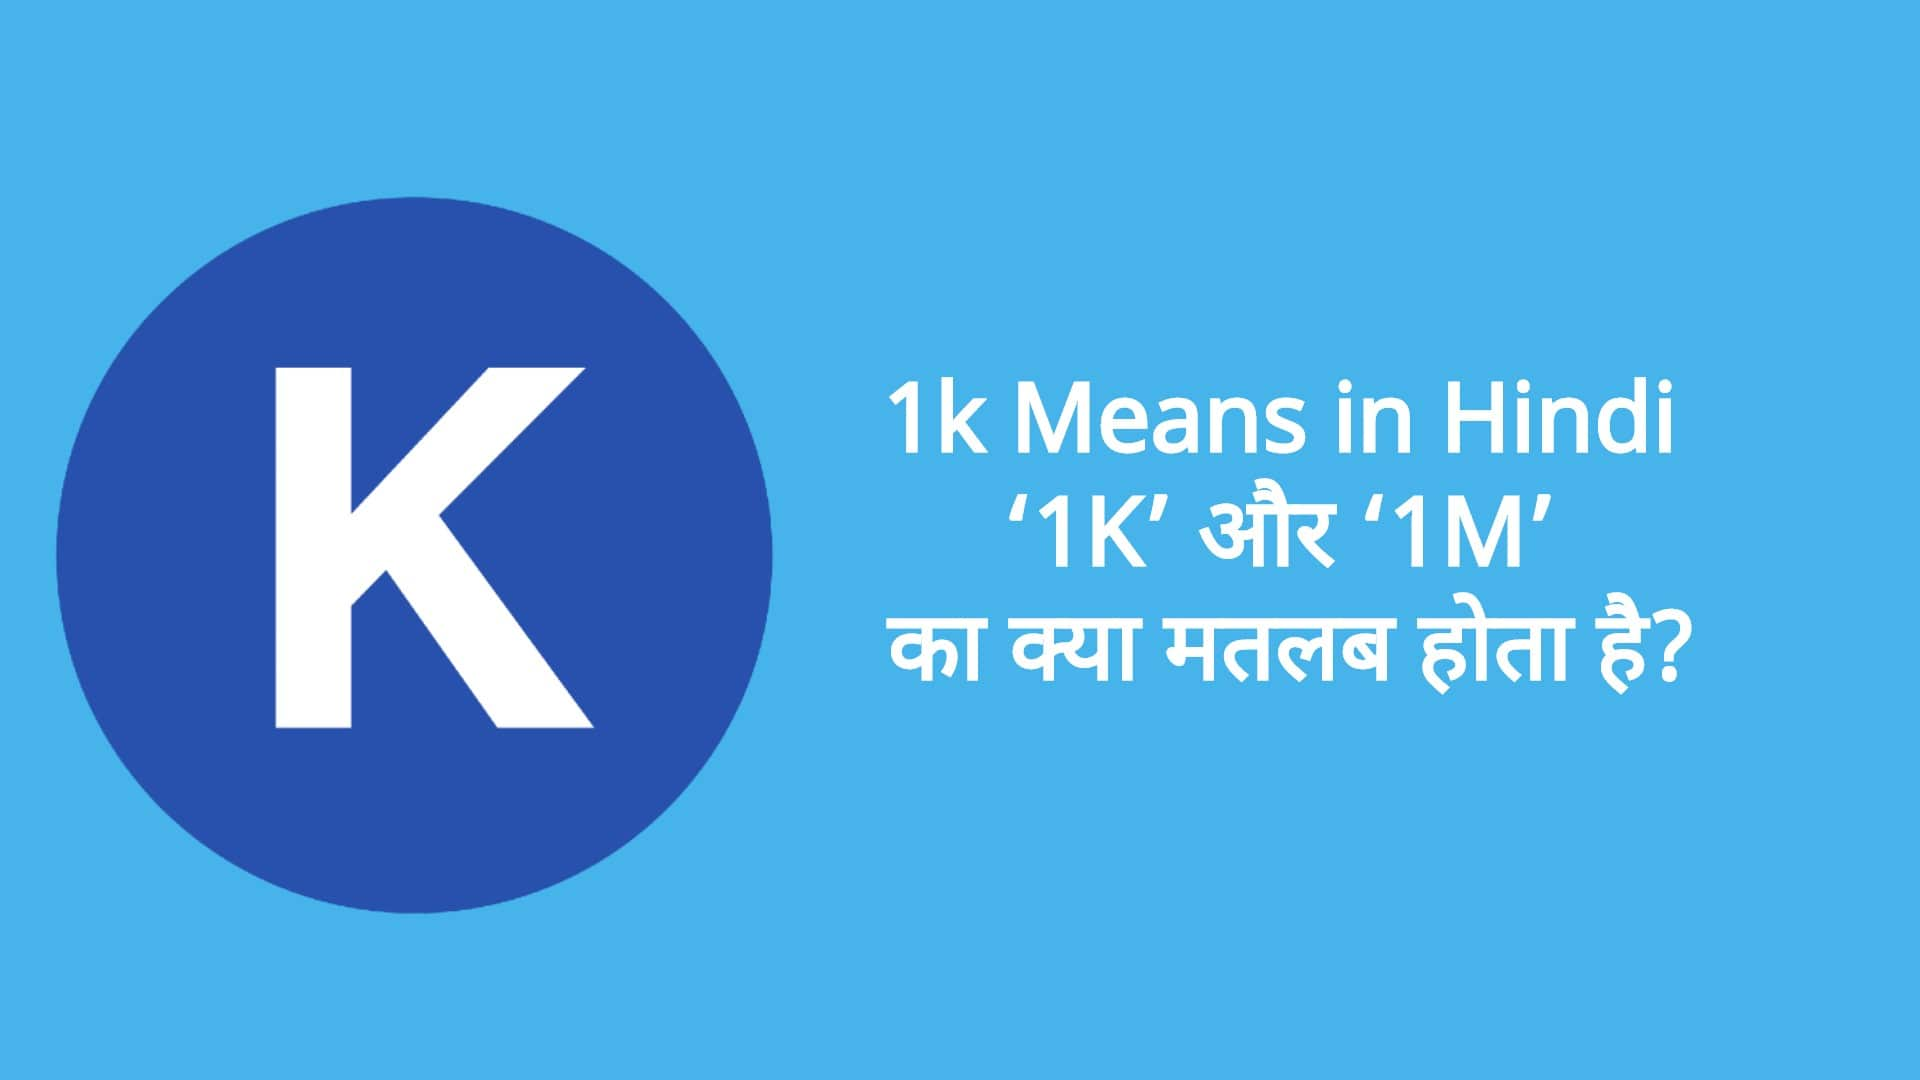 1k Means,10k Means,1k मतलब,10k मतलब,1m means